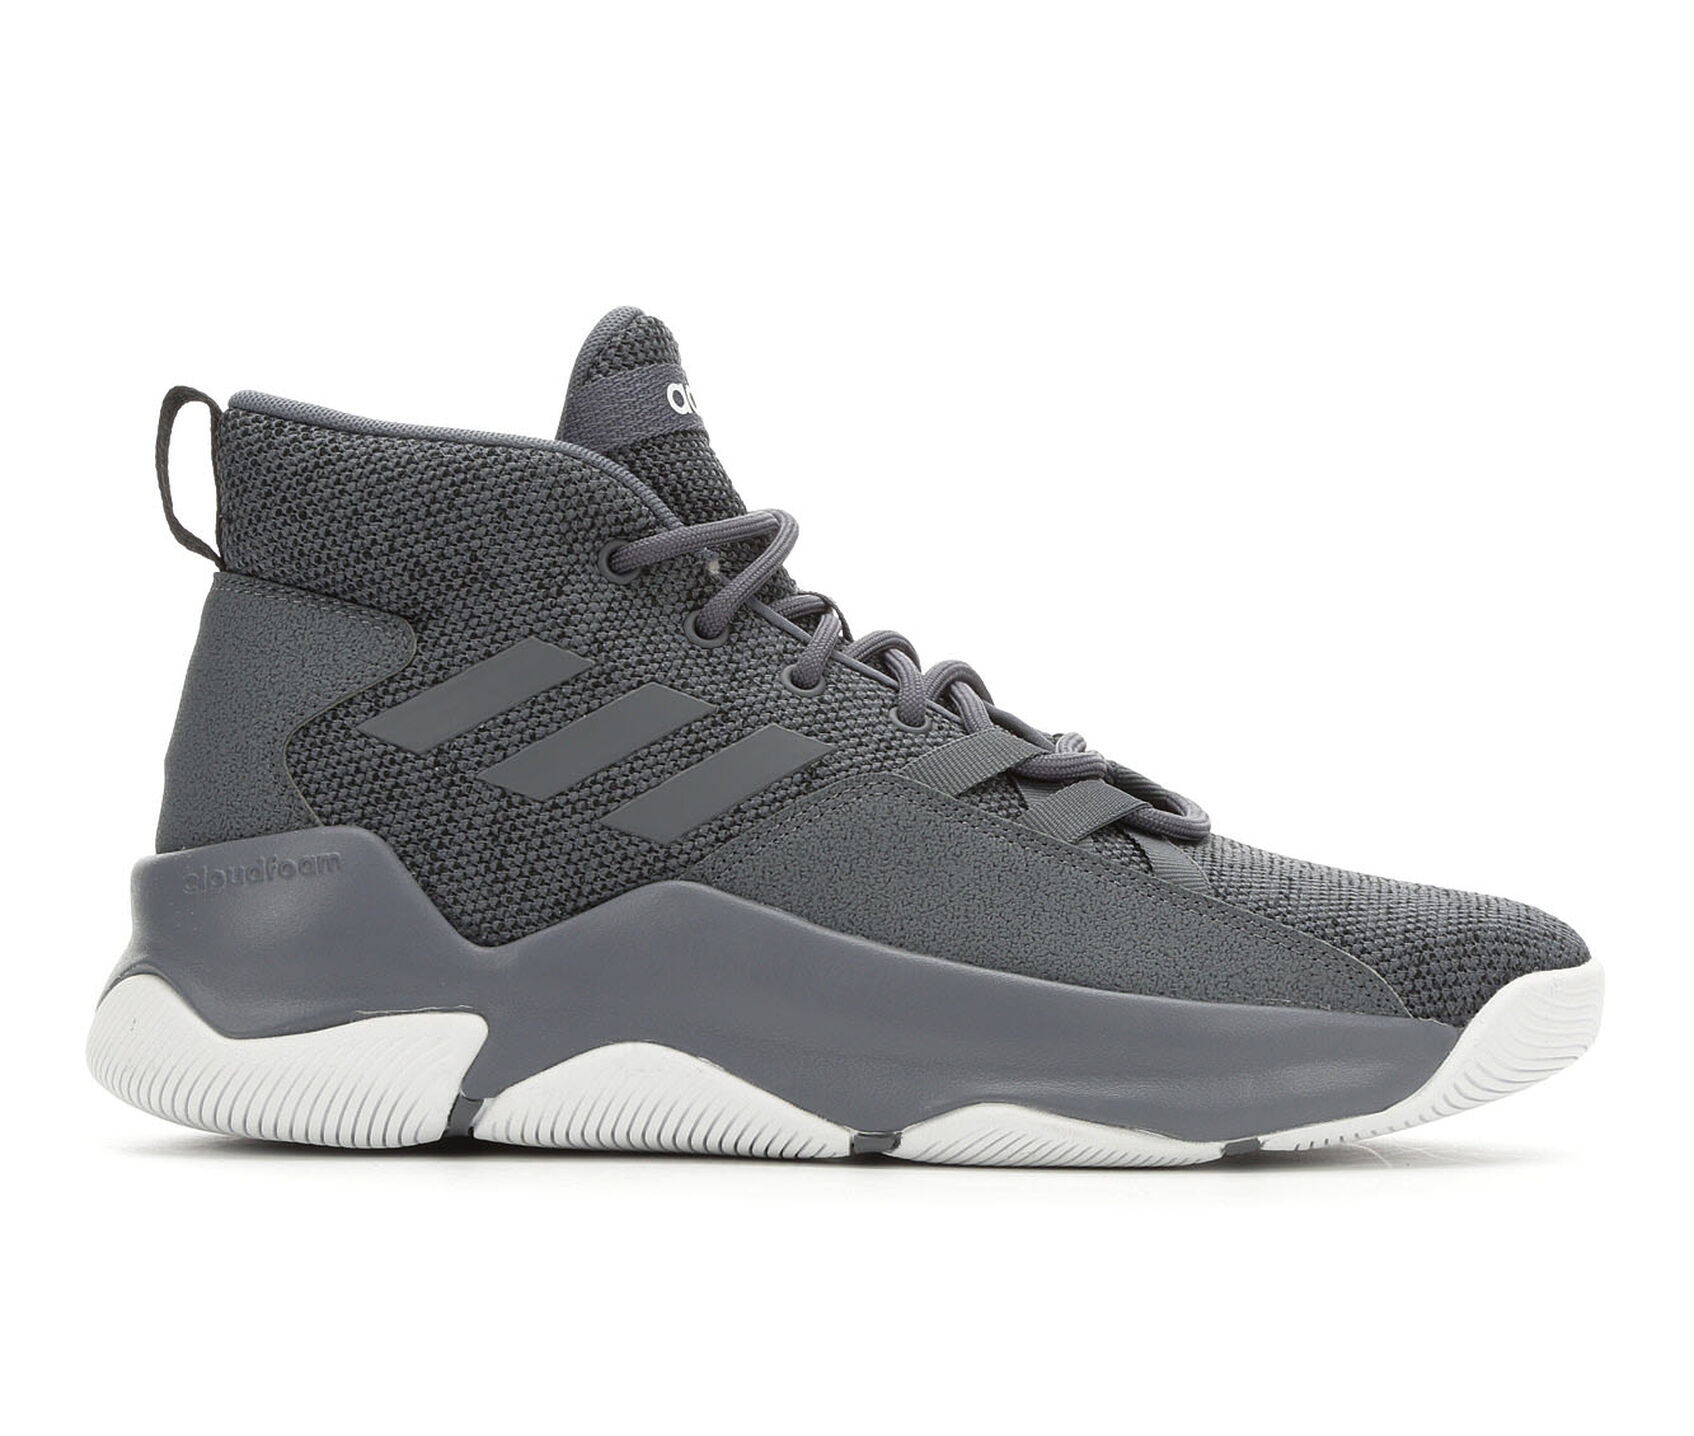 ... Adidas Streetfire Basketball Shoes. Previous 69520b475